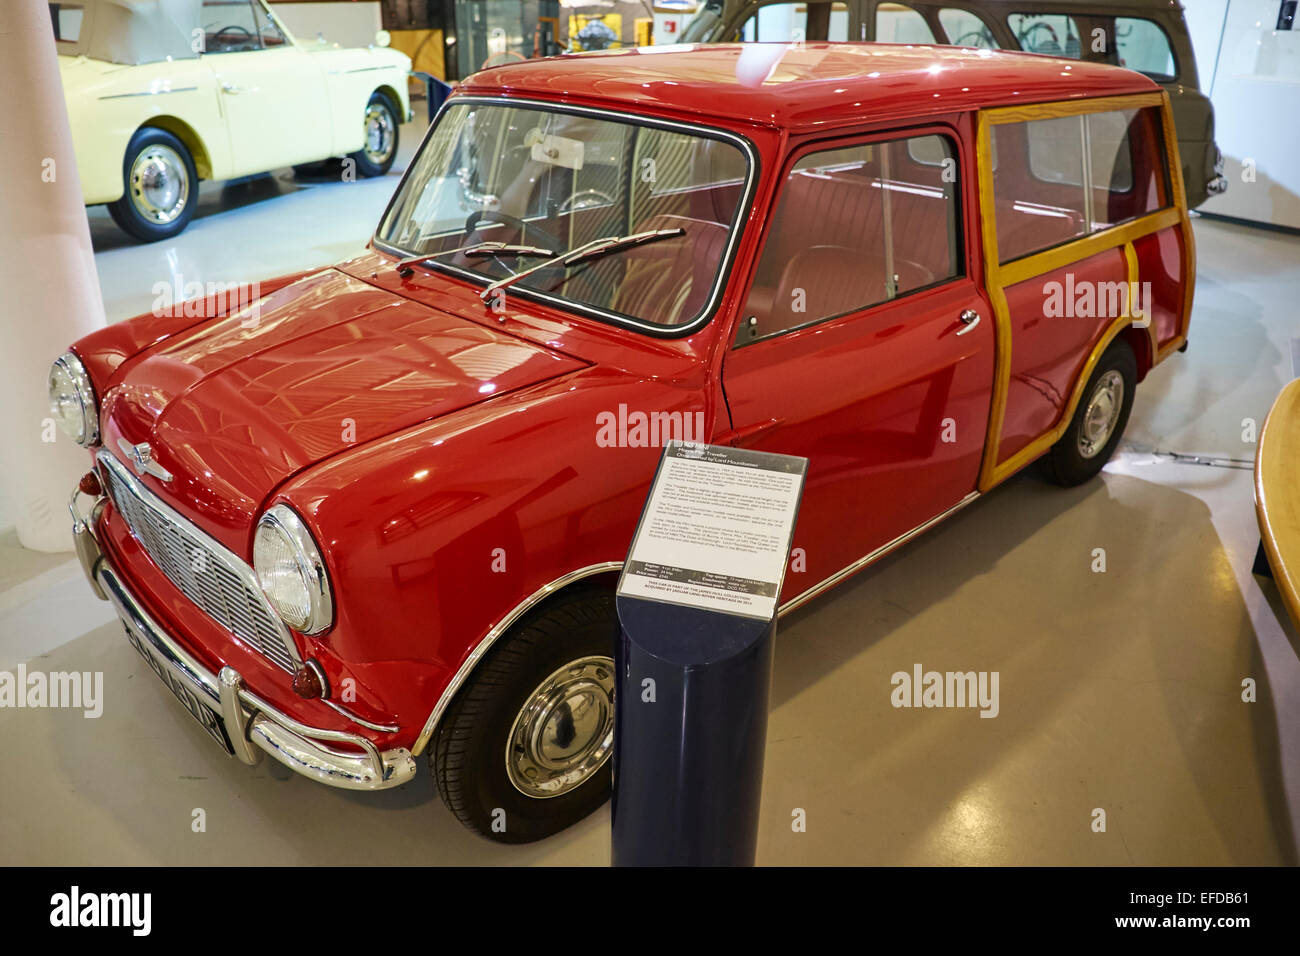 1965 Morris Mini Traveller Once Owned By Lord Mountbatten Heritage Motor Centre Gaydon Warwickshire UK - Stock Image